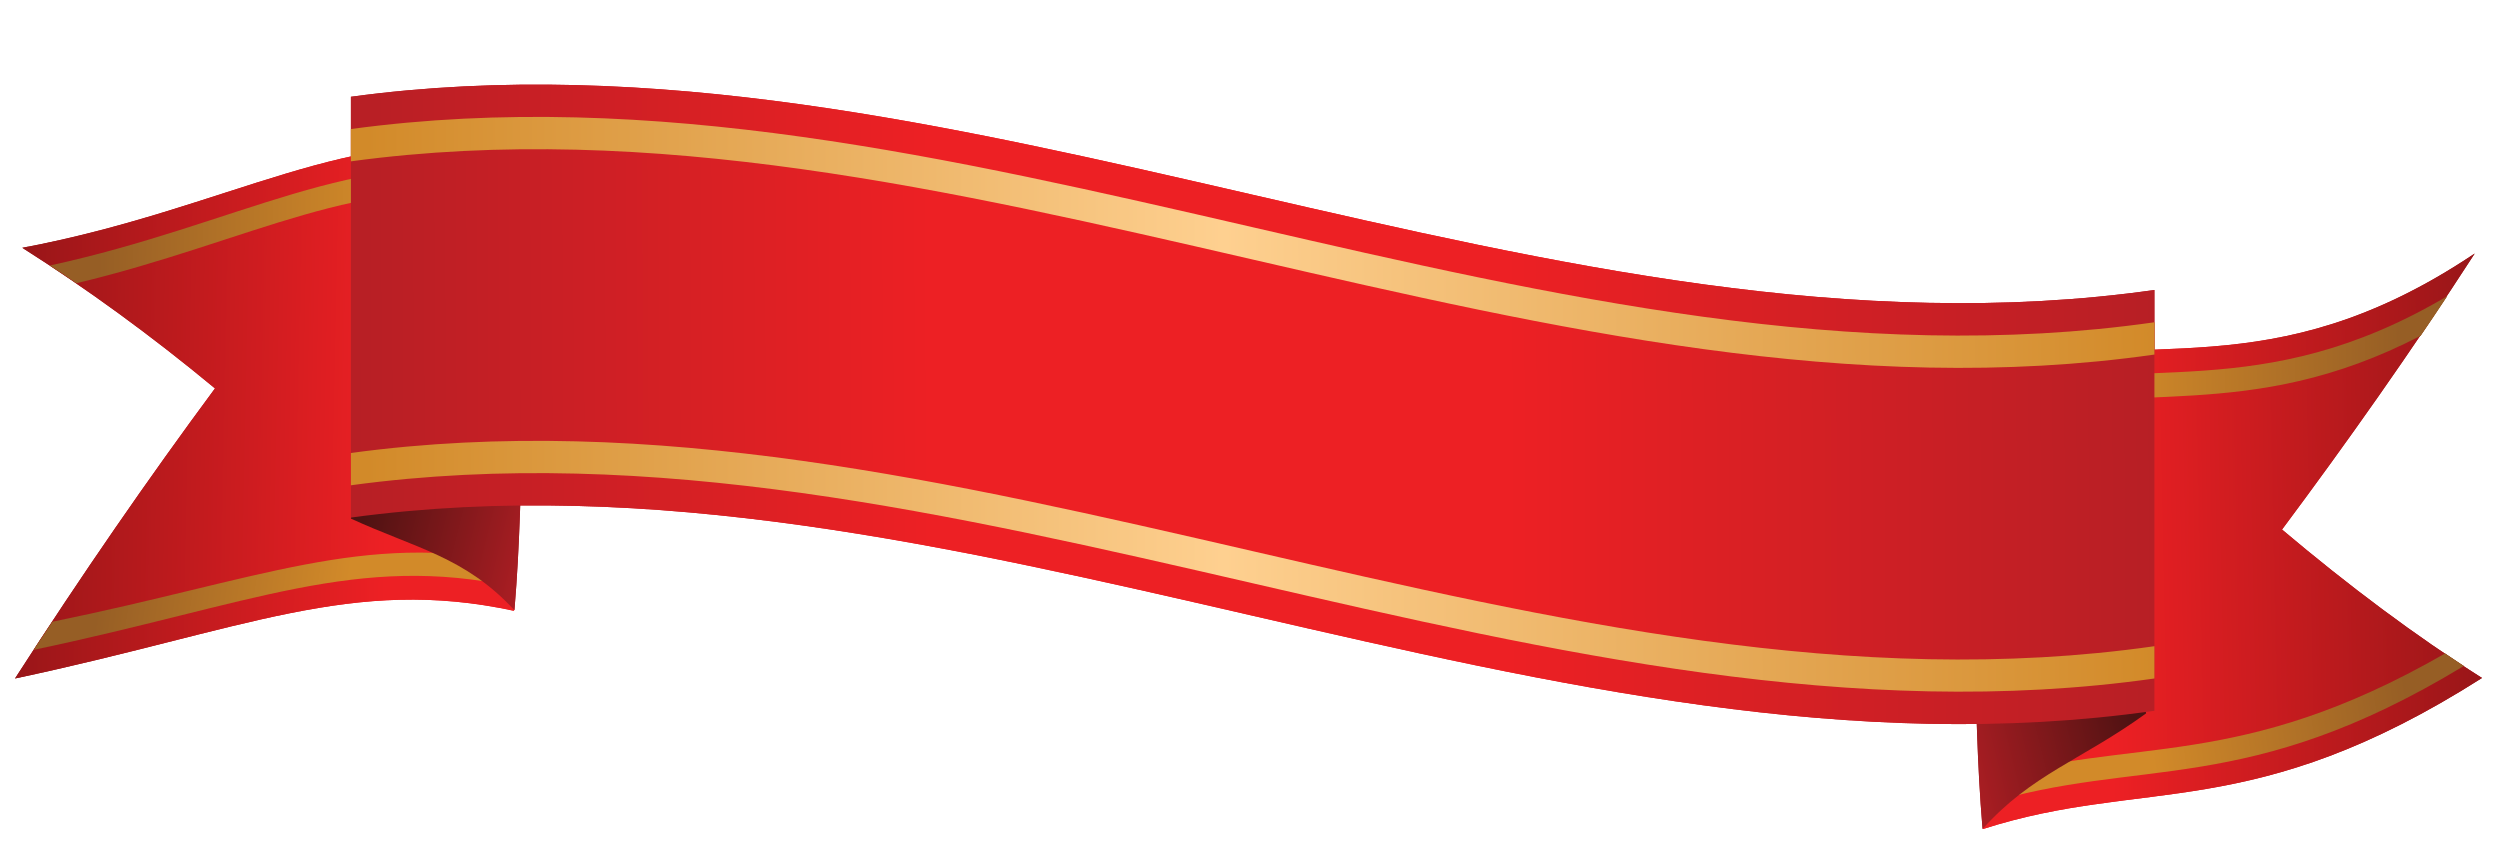 rood lint png